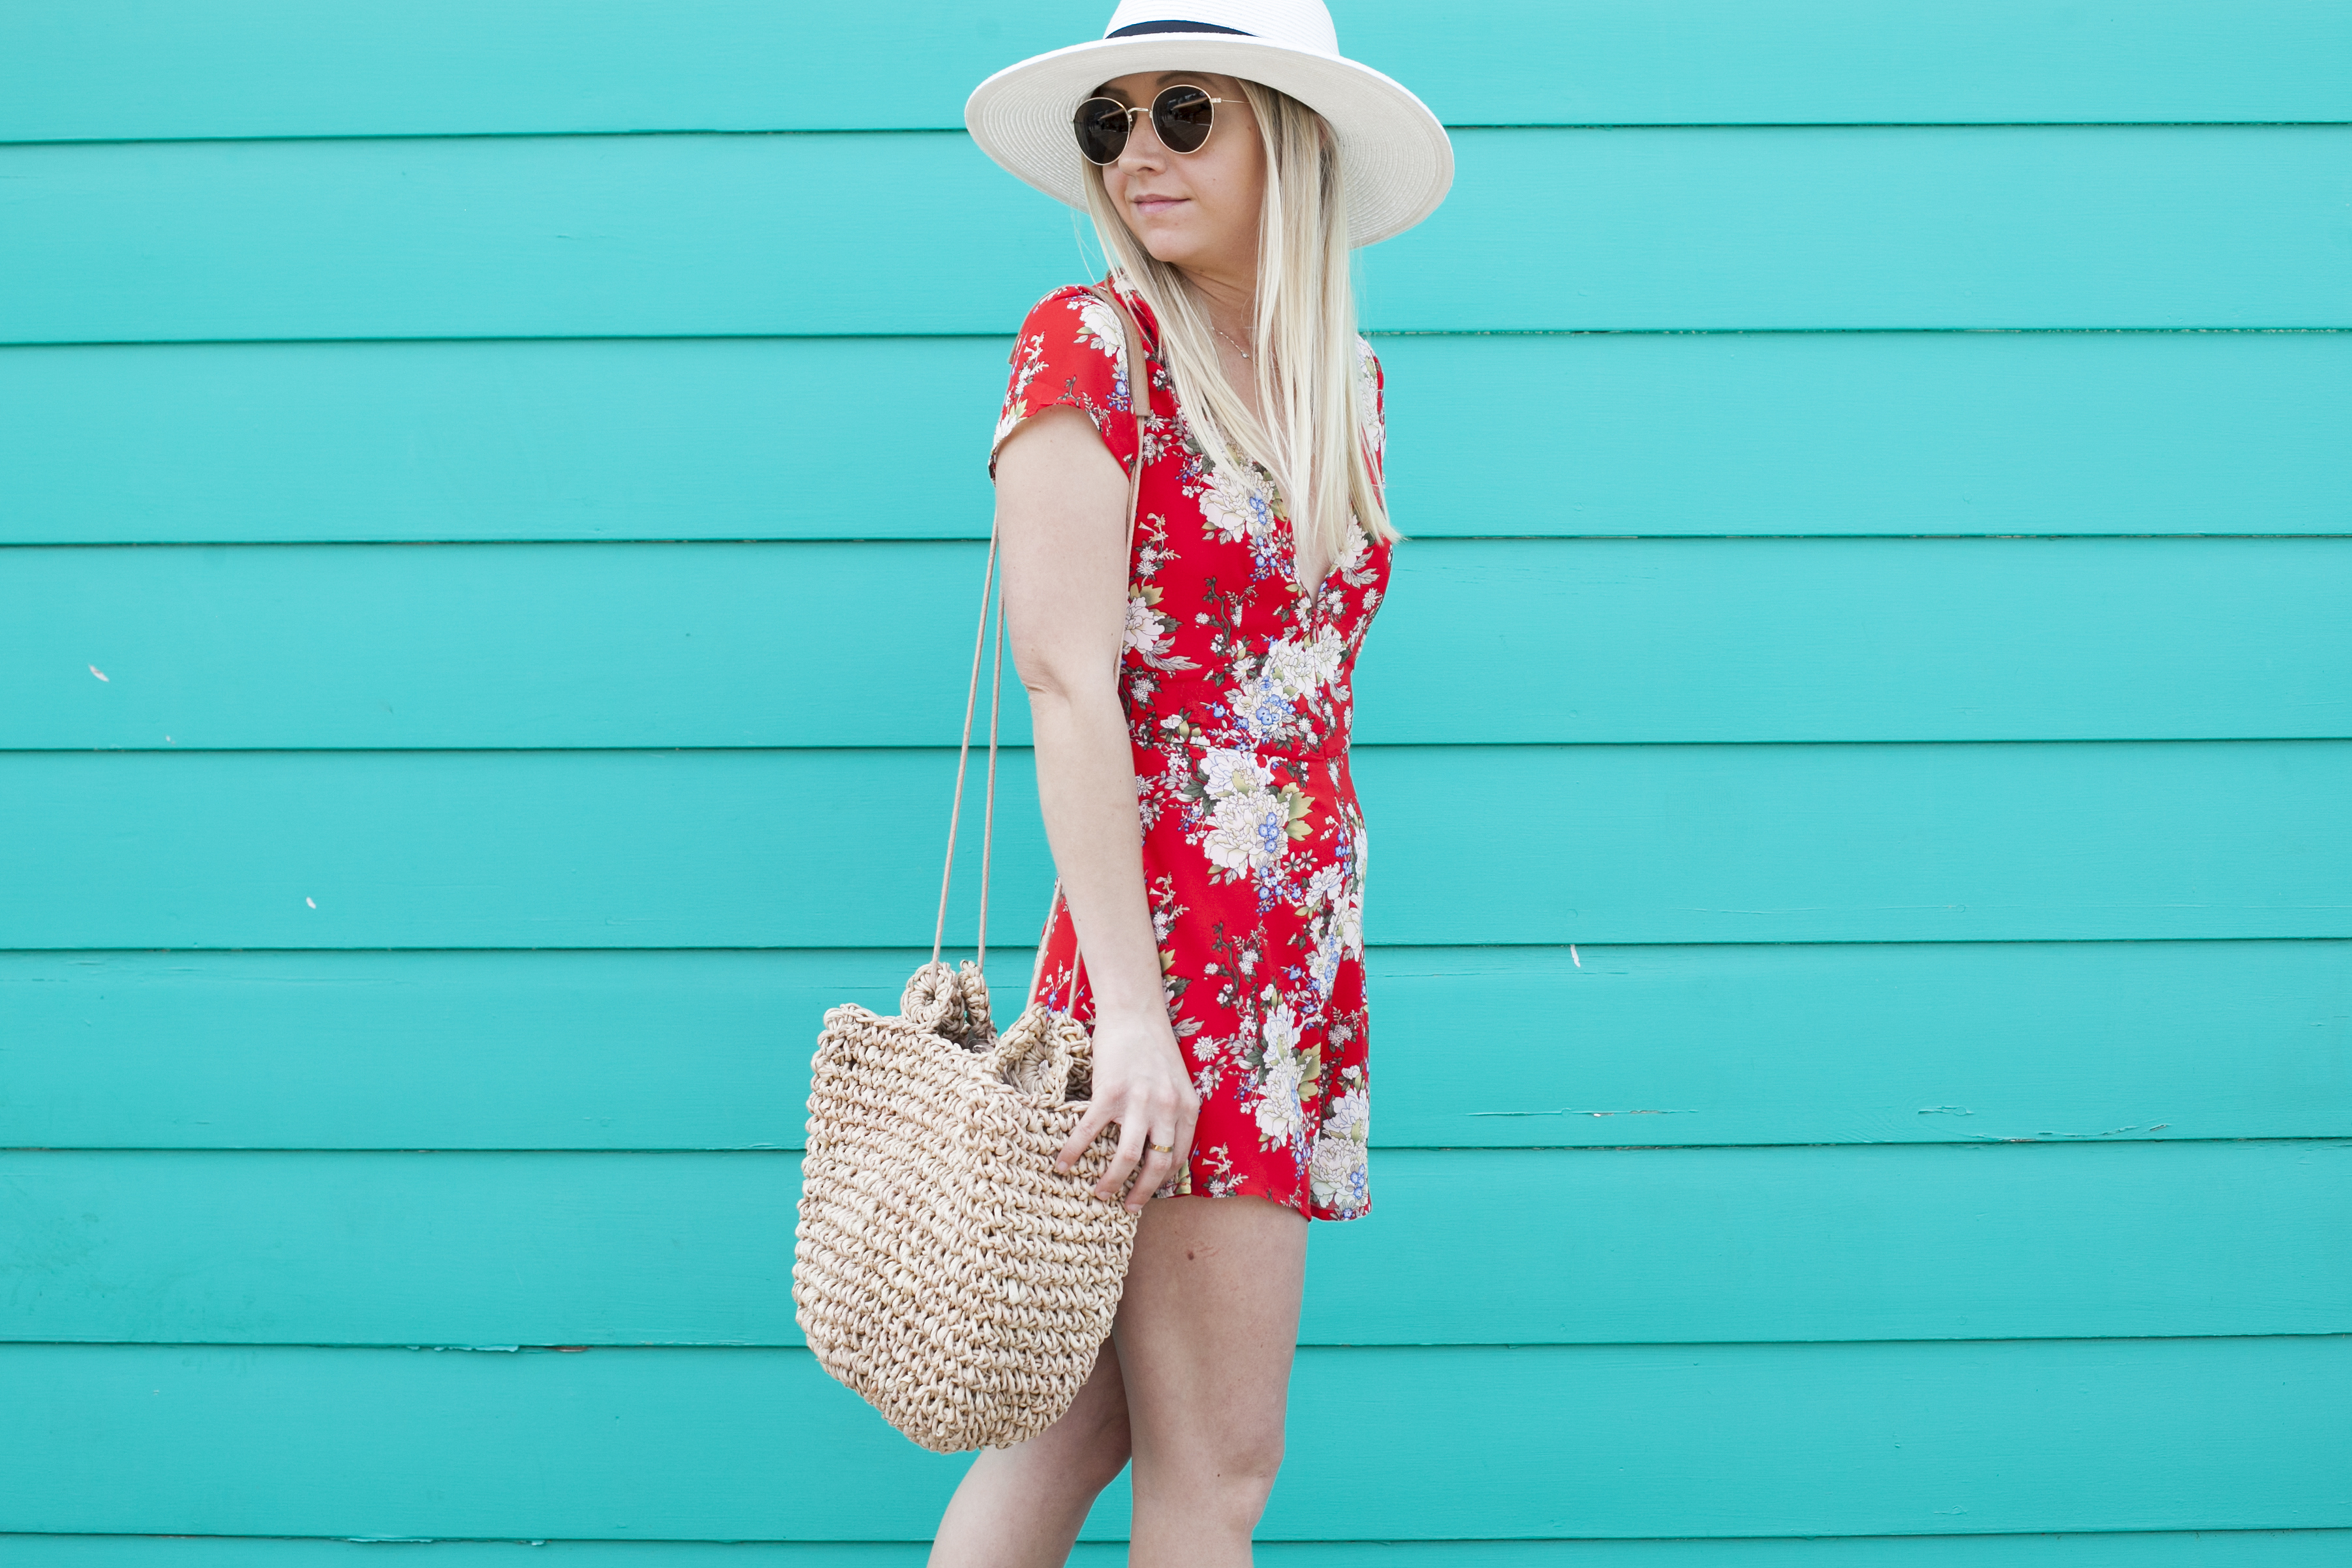 #OUTFITINSPO: FLORAL ROMPERS